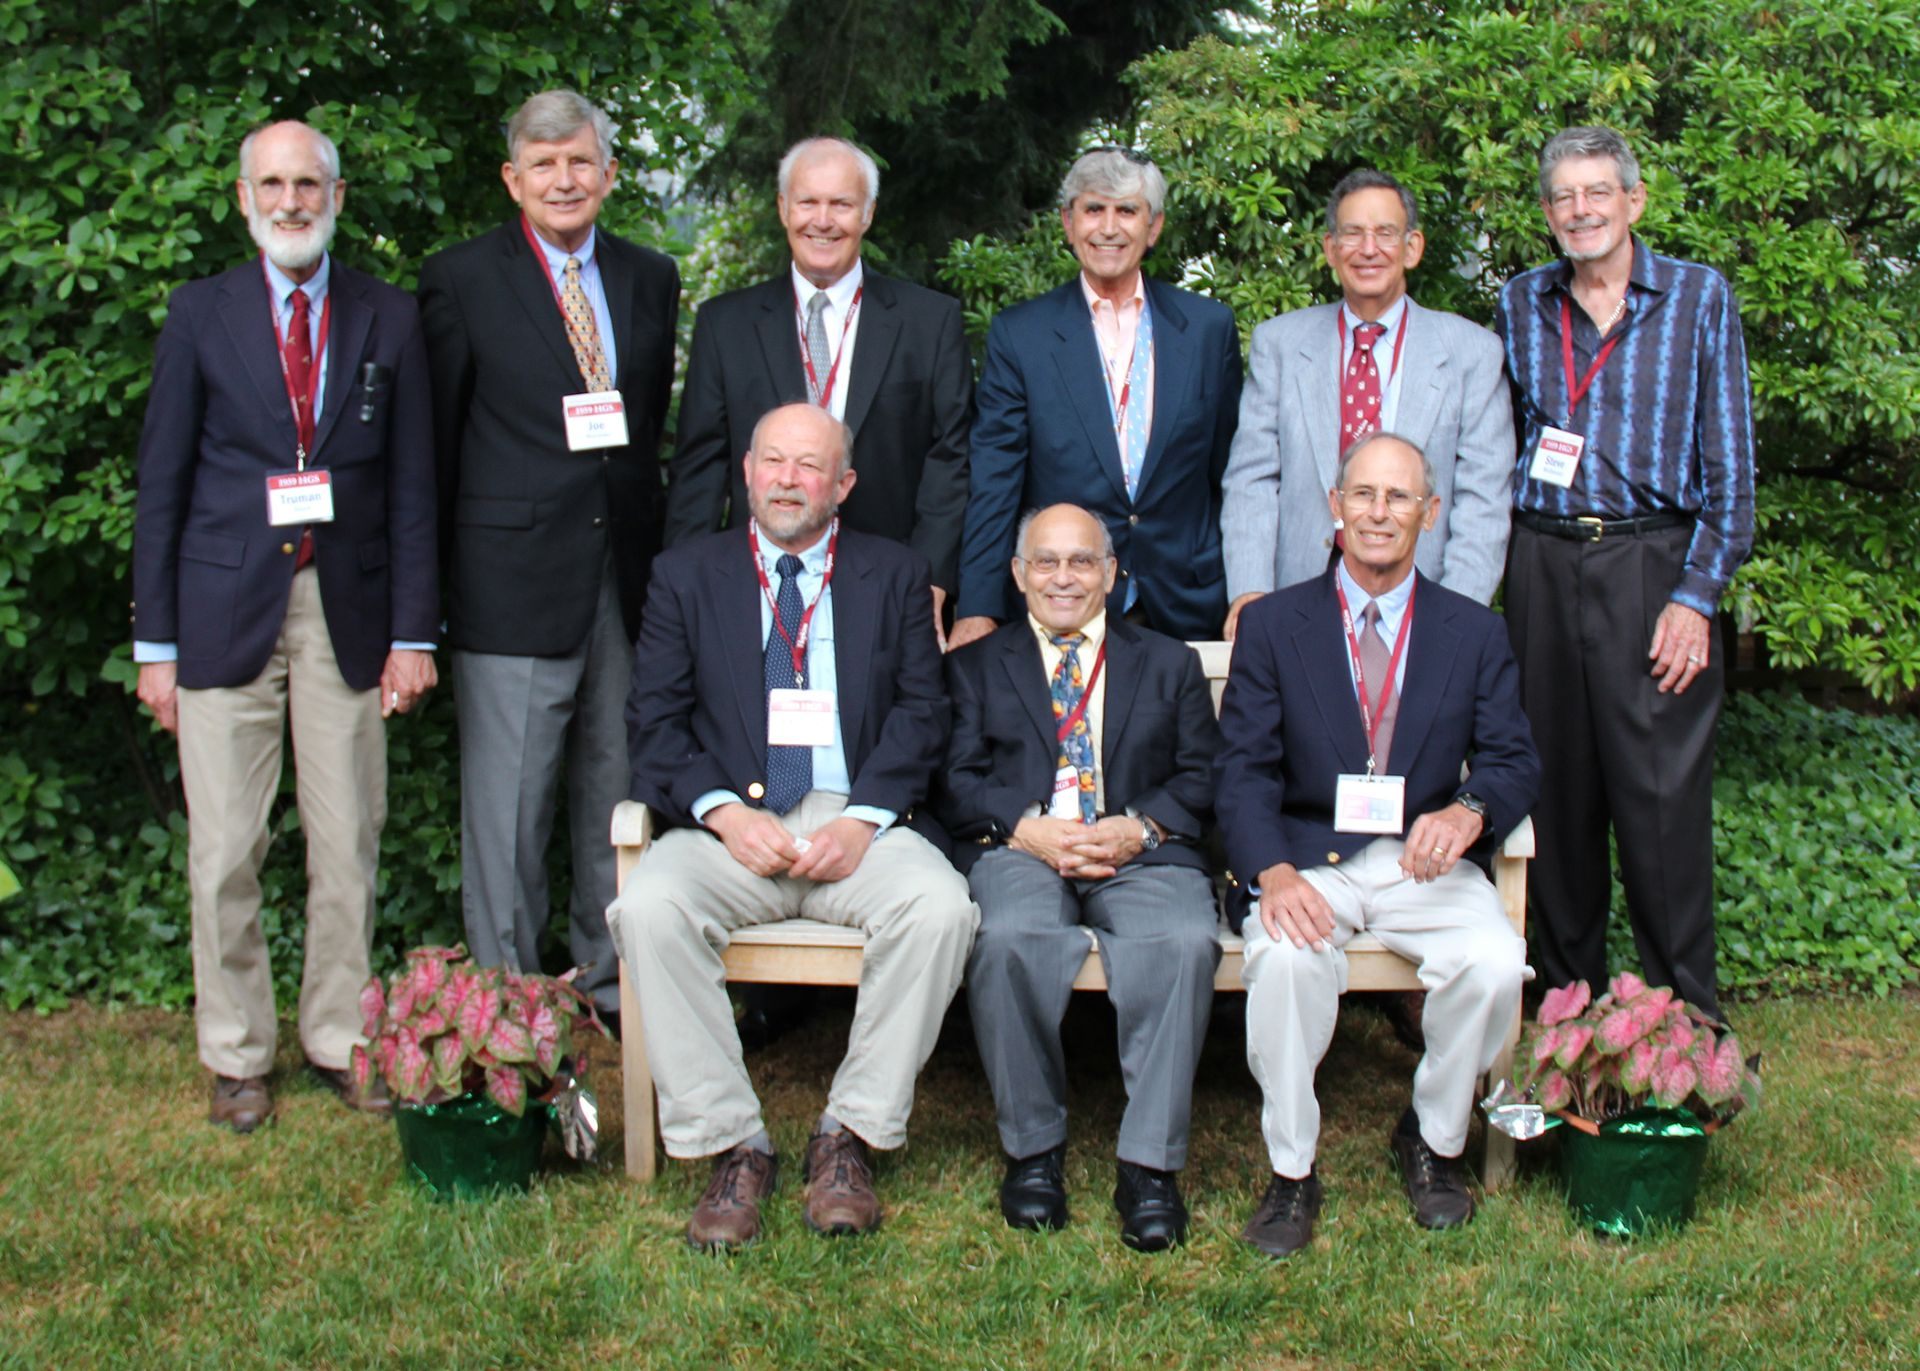 1959 HGS - 55th Reunion